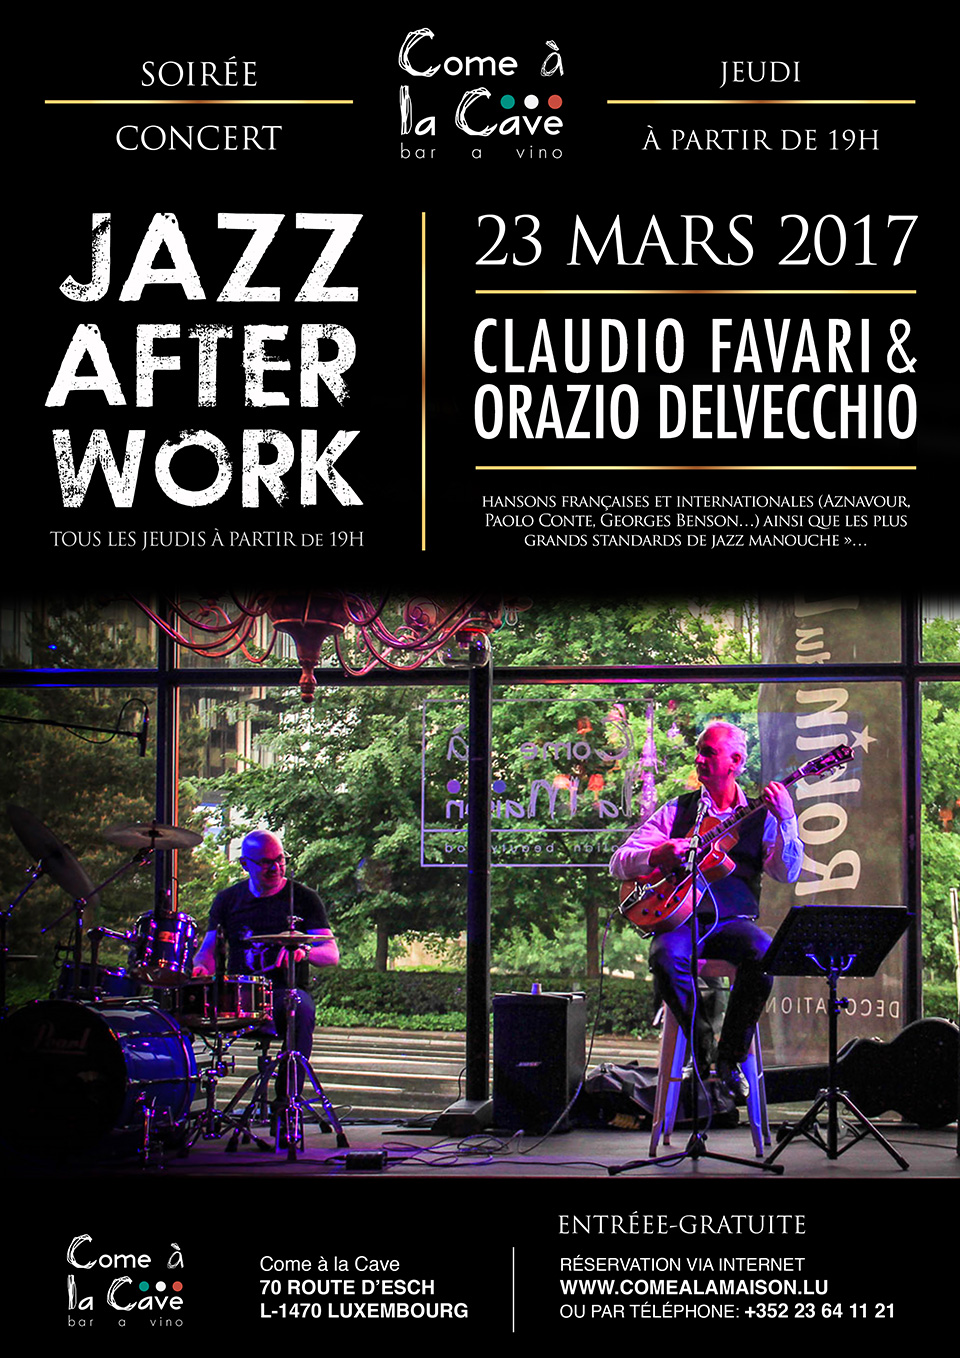 JAZZ AFTER WORK, Claudio Favari & Orazio Delvecchio